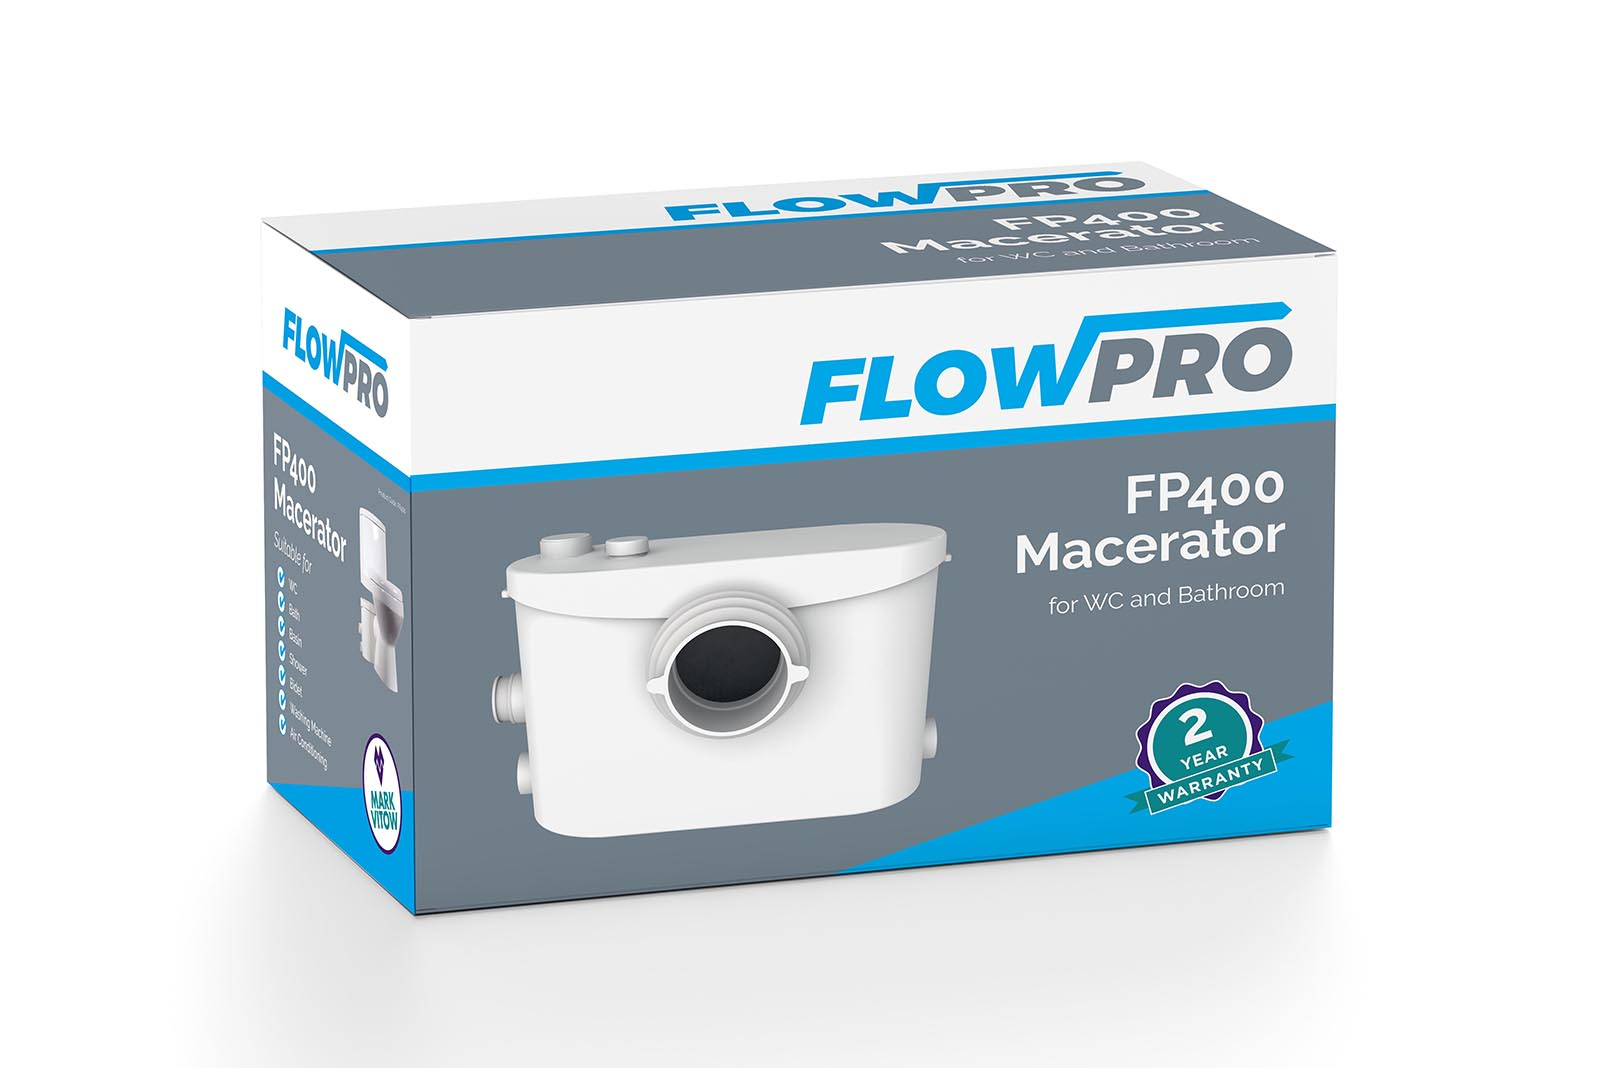 Video overviews of Mark Vitow's FlowPro range of macerators